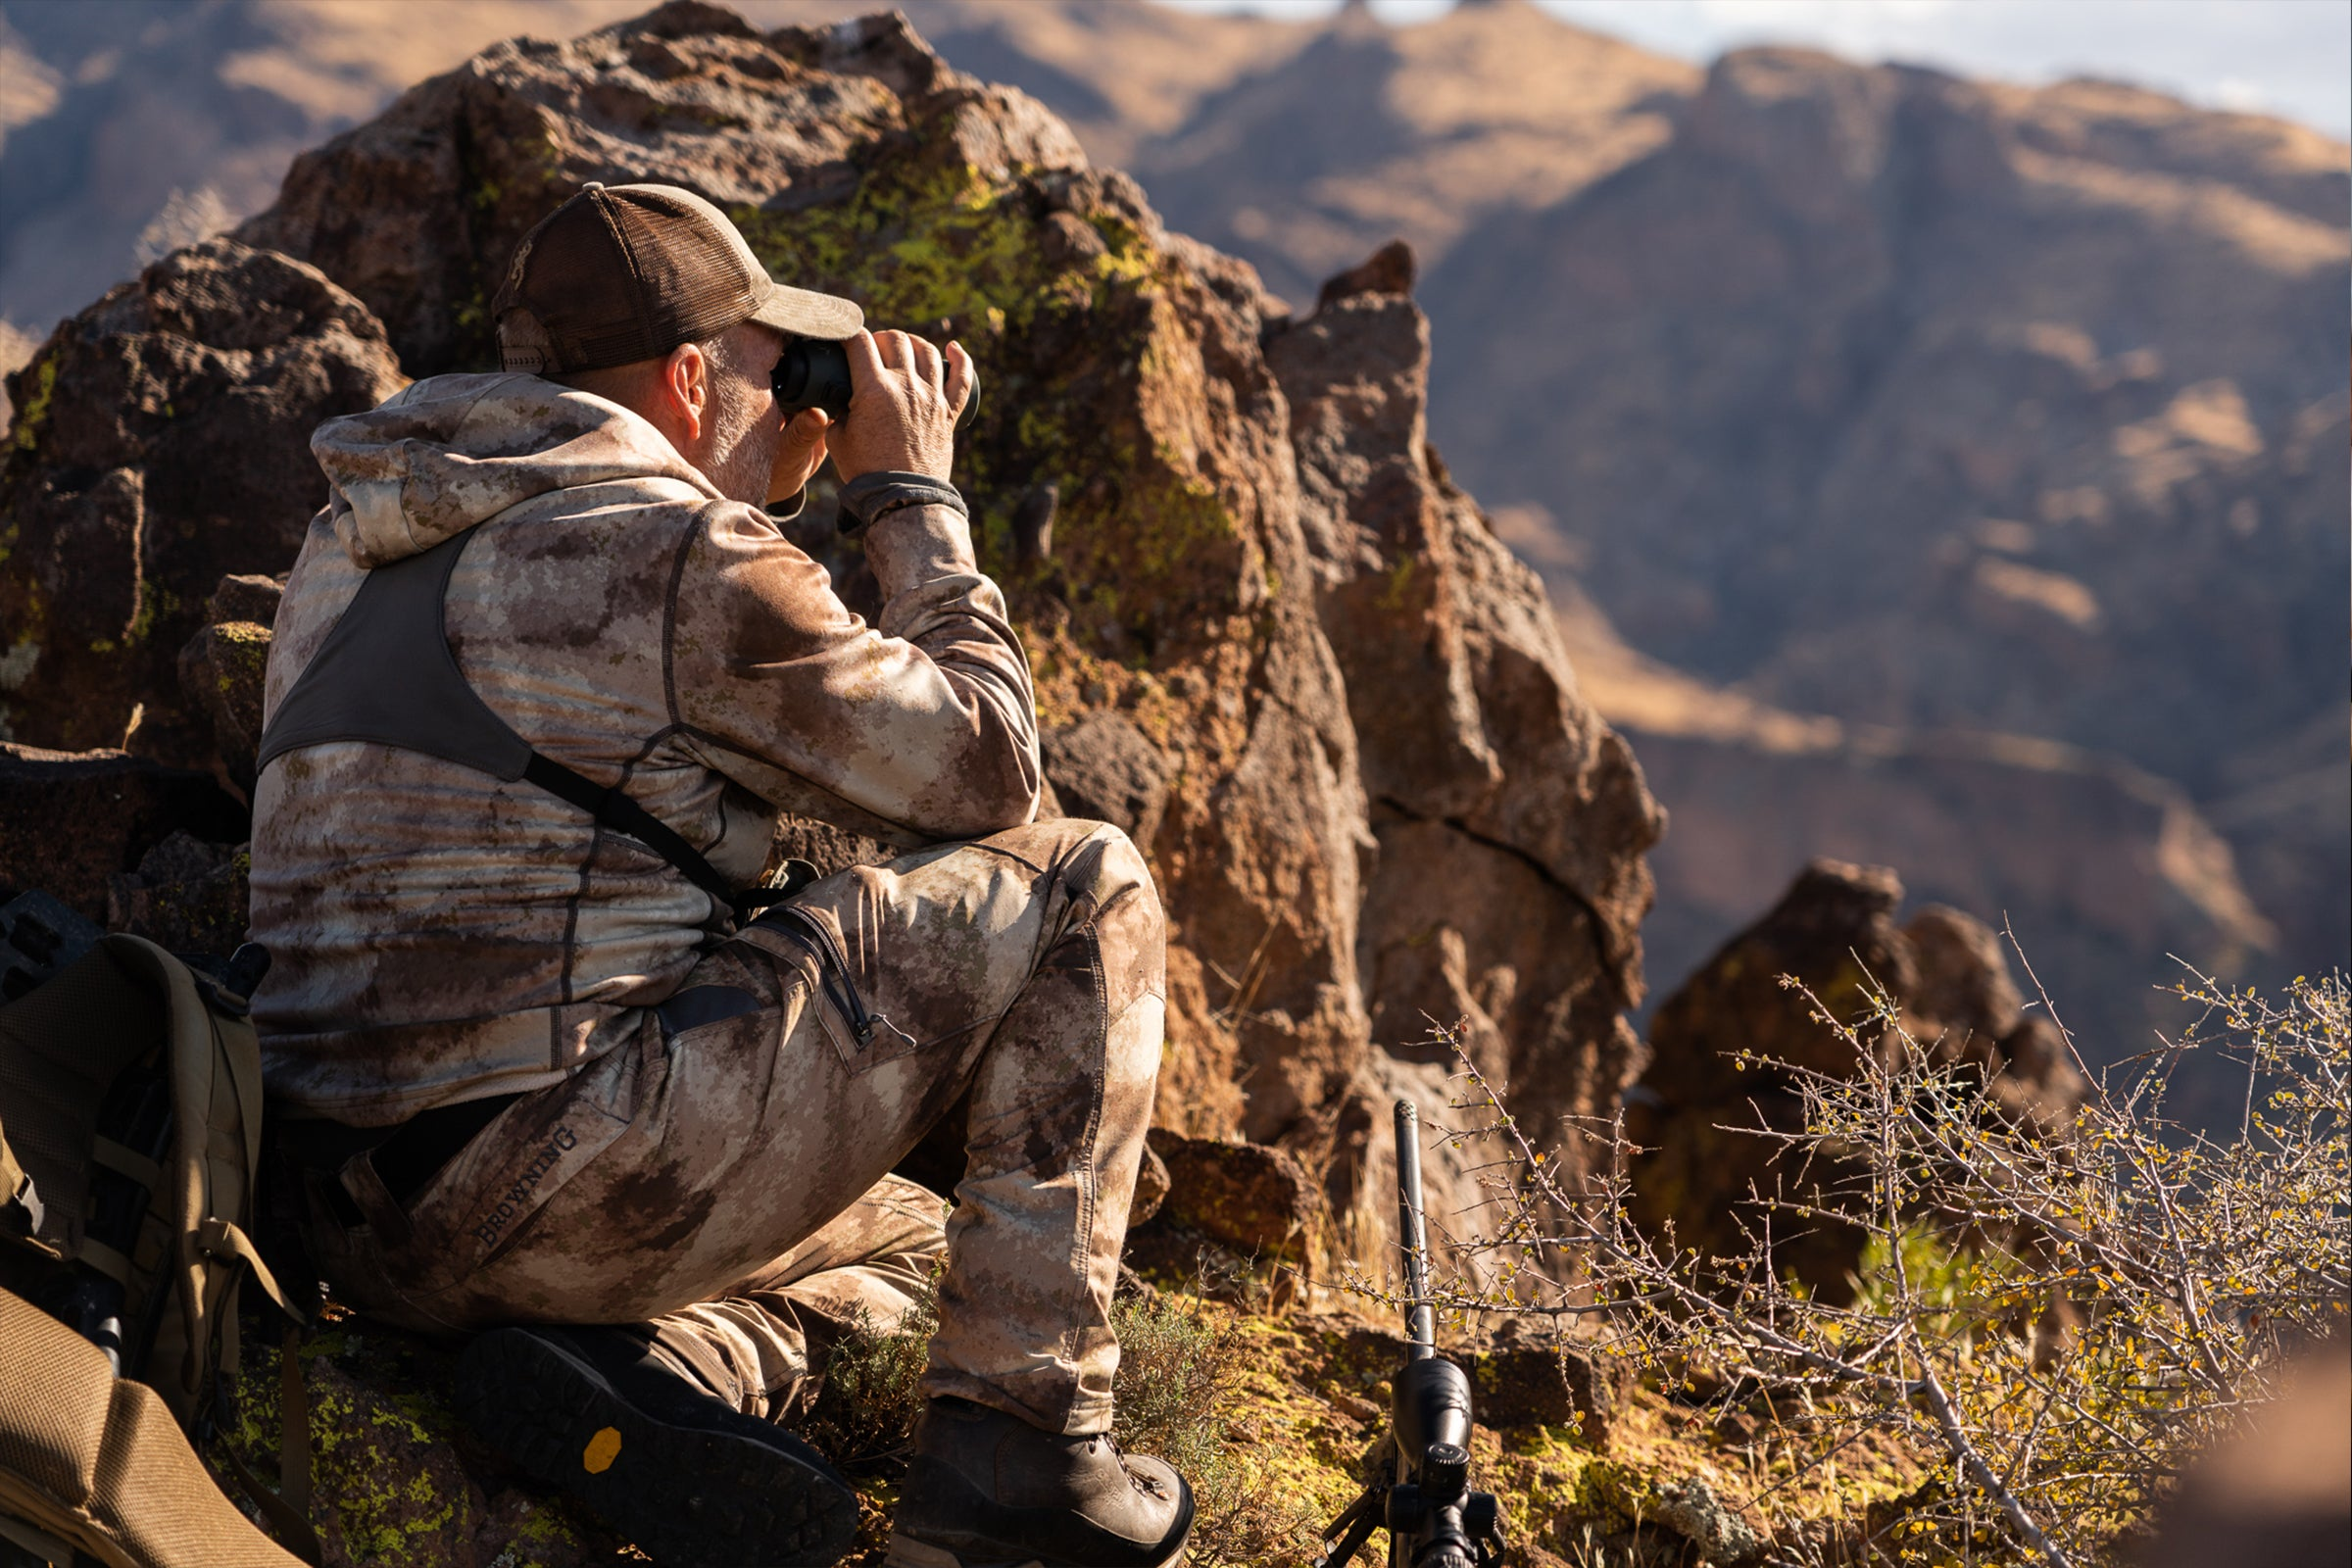 Binocular Types and When to Use Them